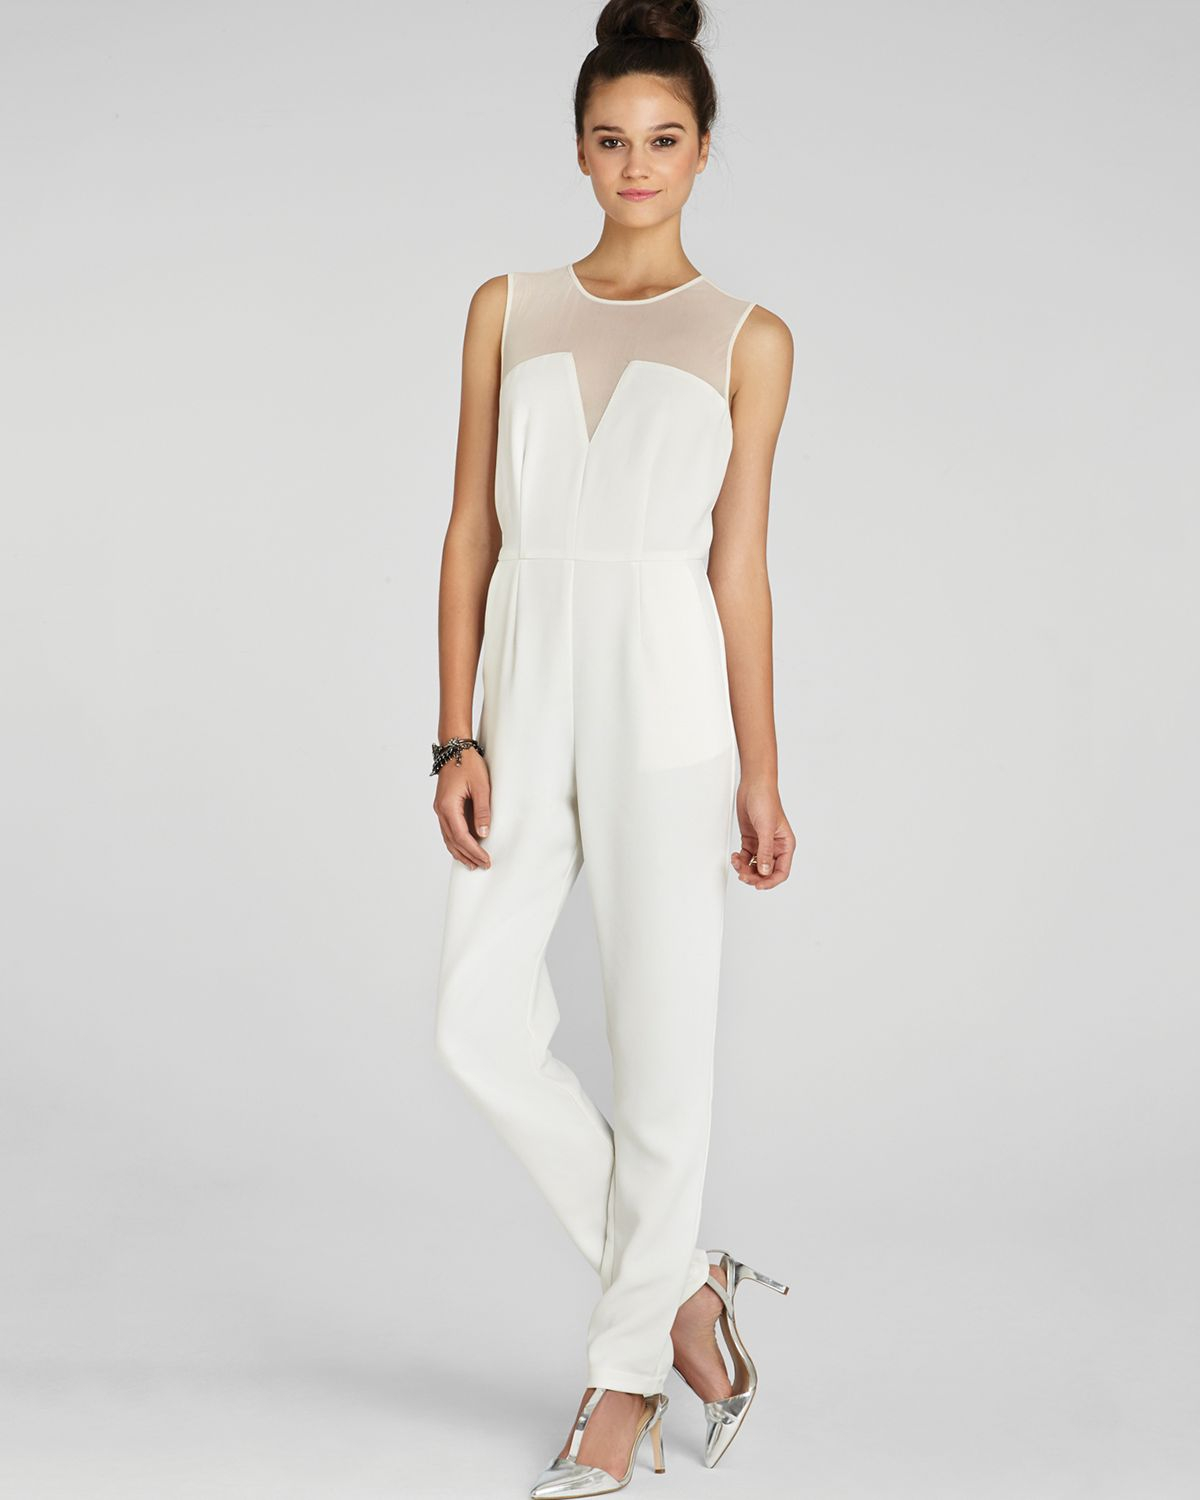 Shop for jumpsuits and rompers for women at lolapalka.cf Find a wide range of women's jumpsuit and romper styles from top brands. Free shipping and returns.